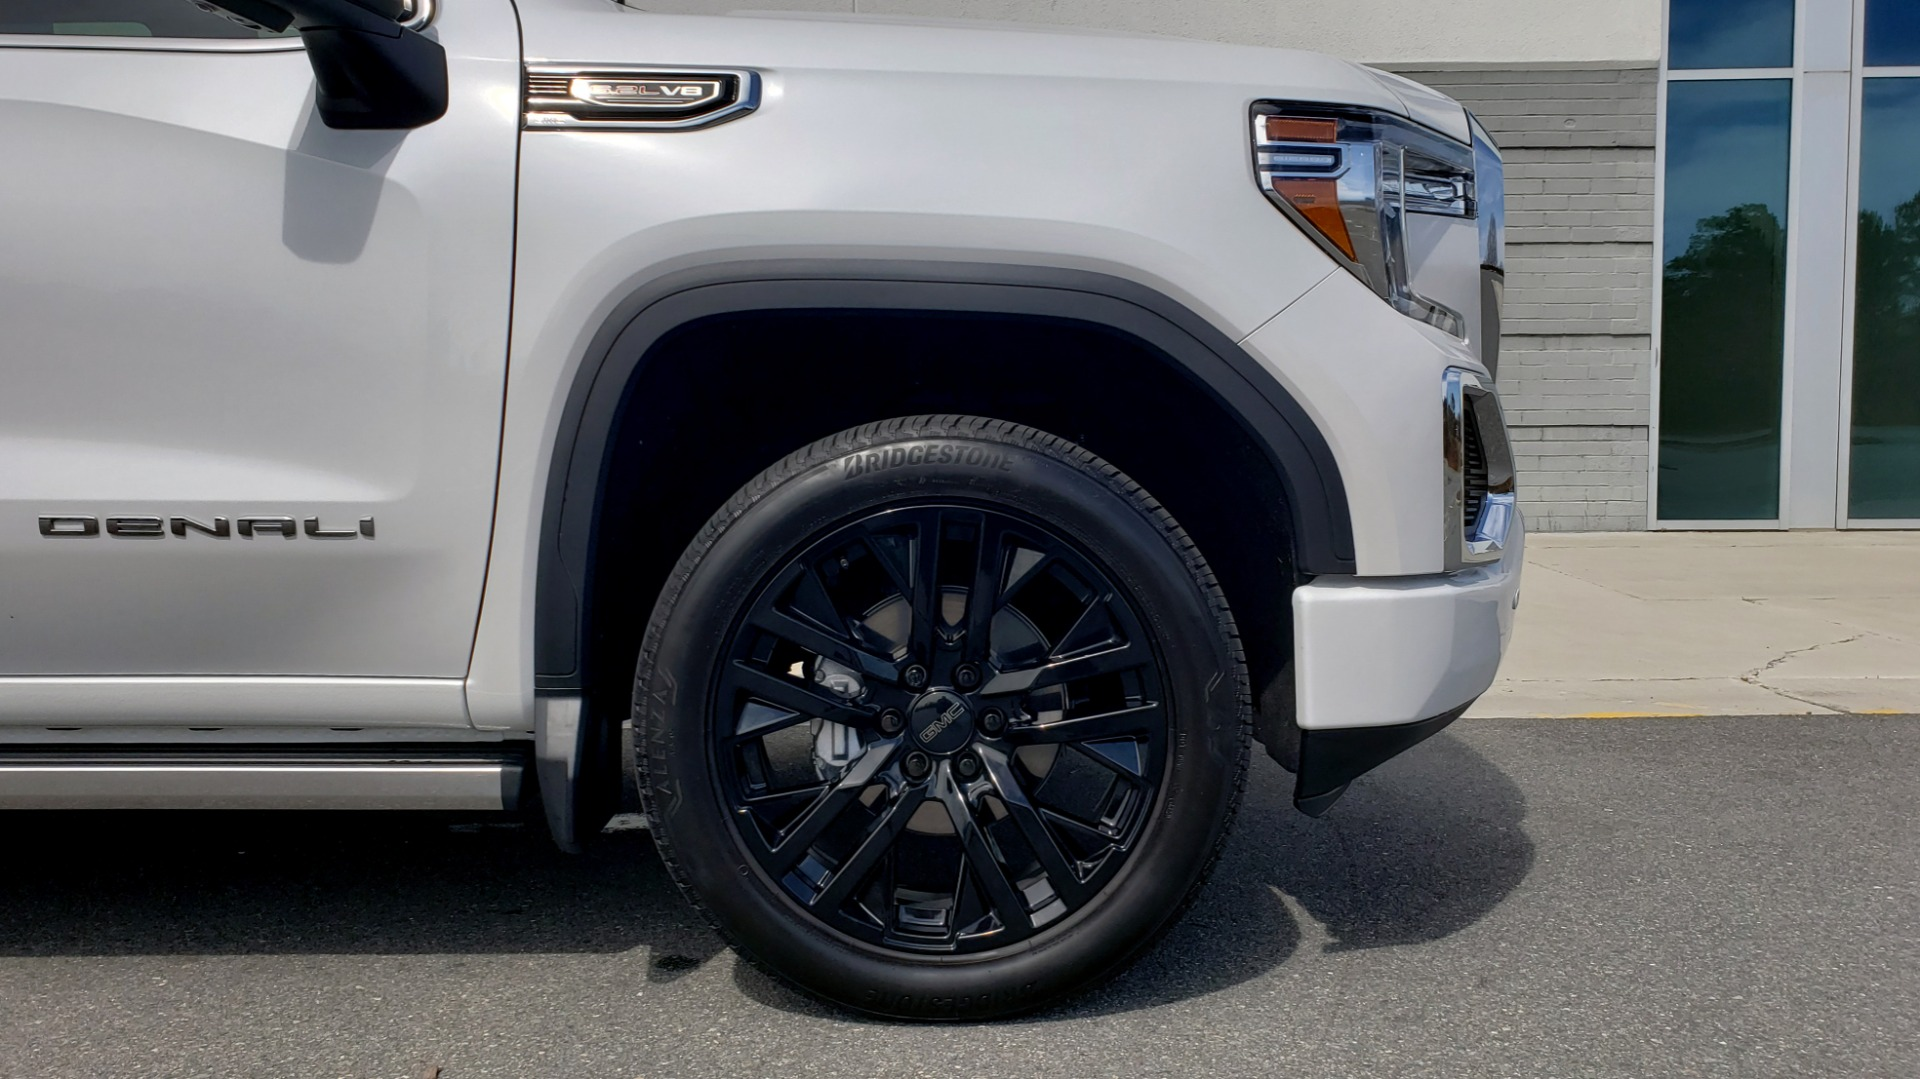 Used 2020 GMC SIERRA 1500 DENALI 4X4 CREWCAB 6.2L V8 / TECH / NAV / SUNROOF / DRVR ALERT II for sale Sold at Formula Imports in Charlotte NC 28227 94